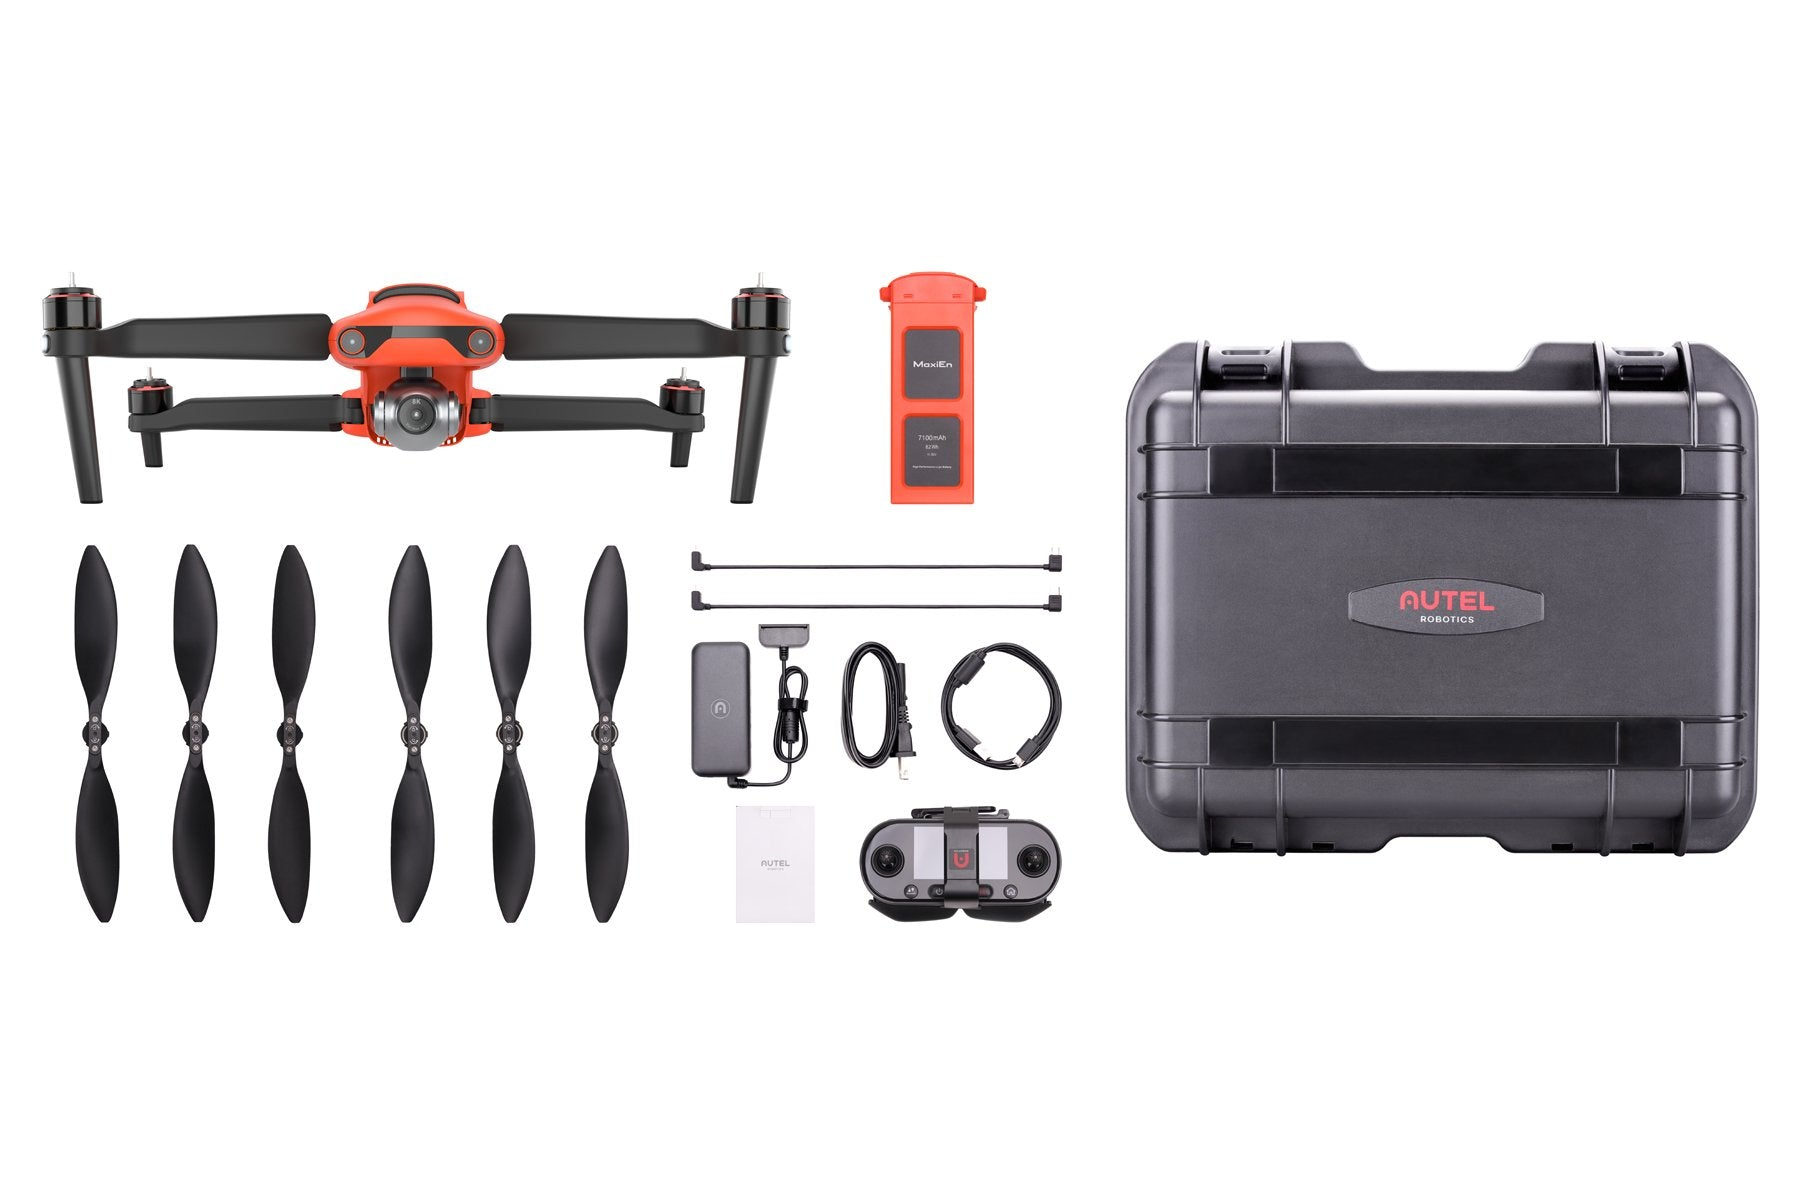 Autel Evo II 8K Drone Rugged Bundle